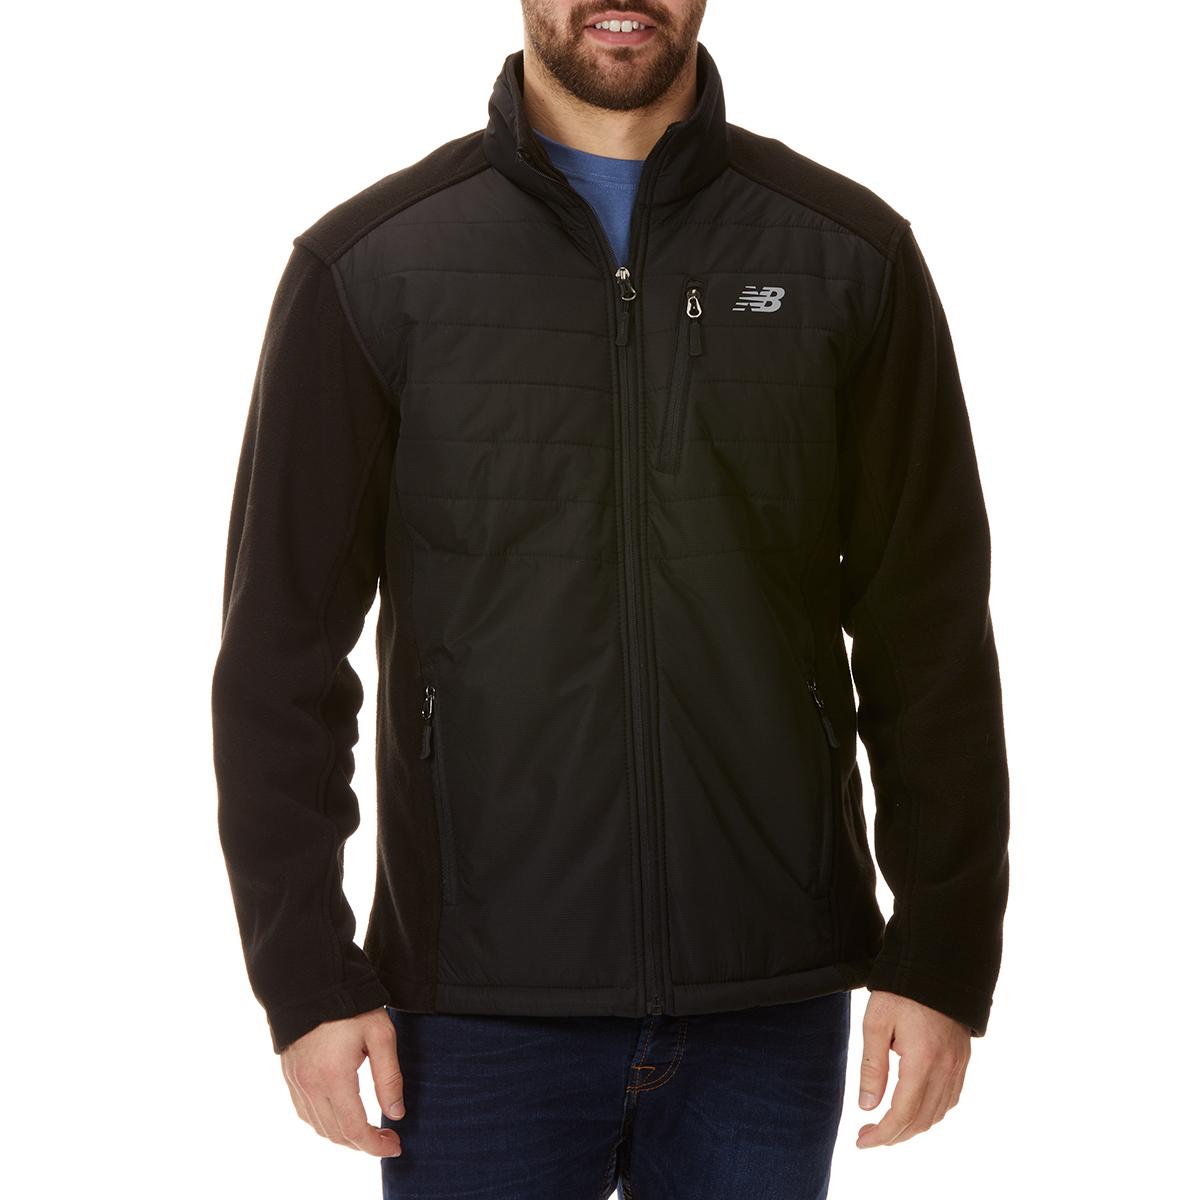 New Balance Men's Dobby Overlay Polar Fleece Jacket - Black, M